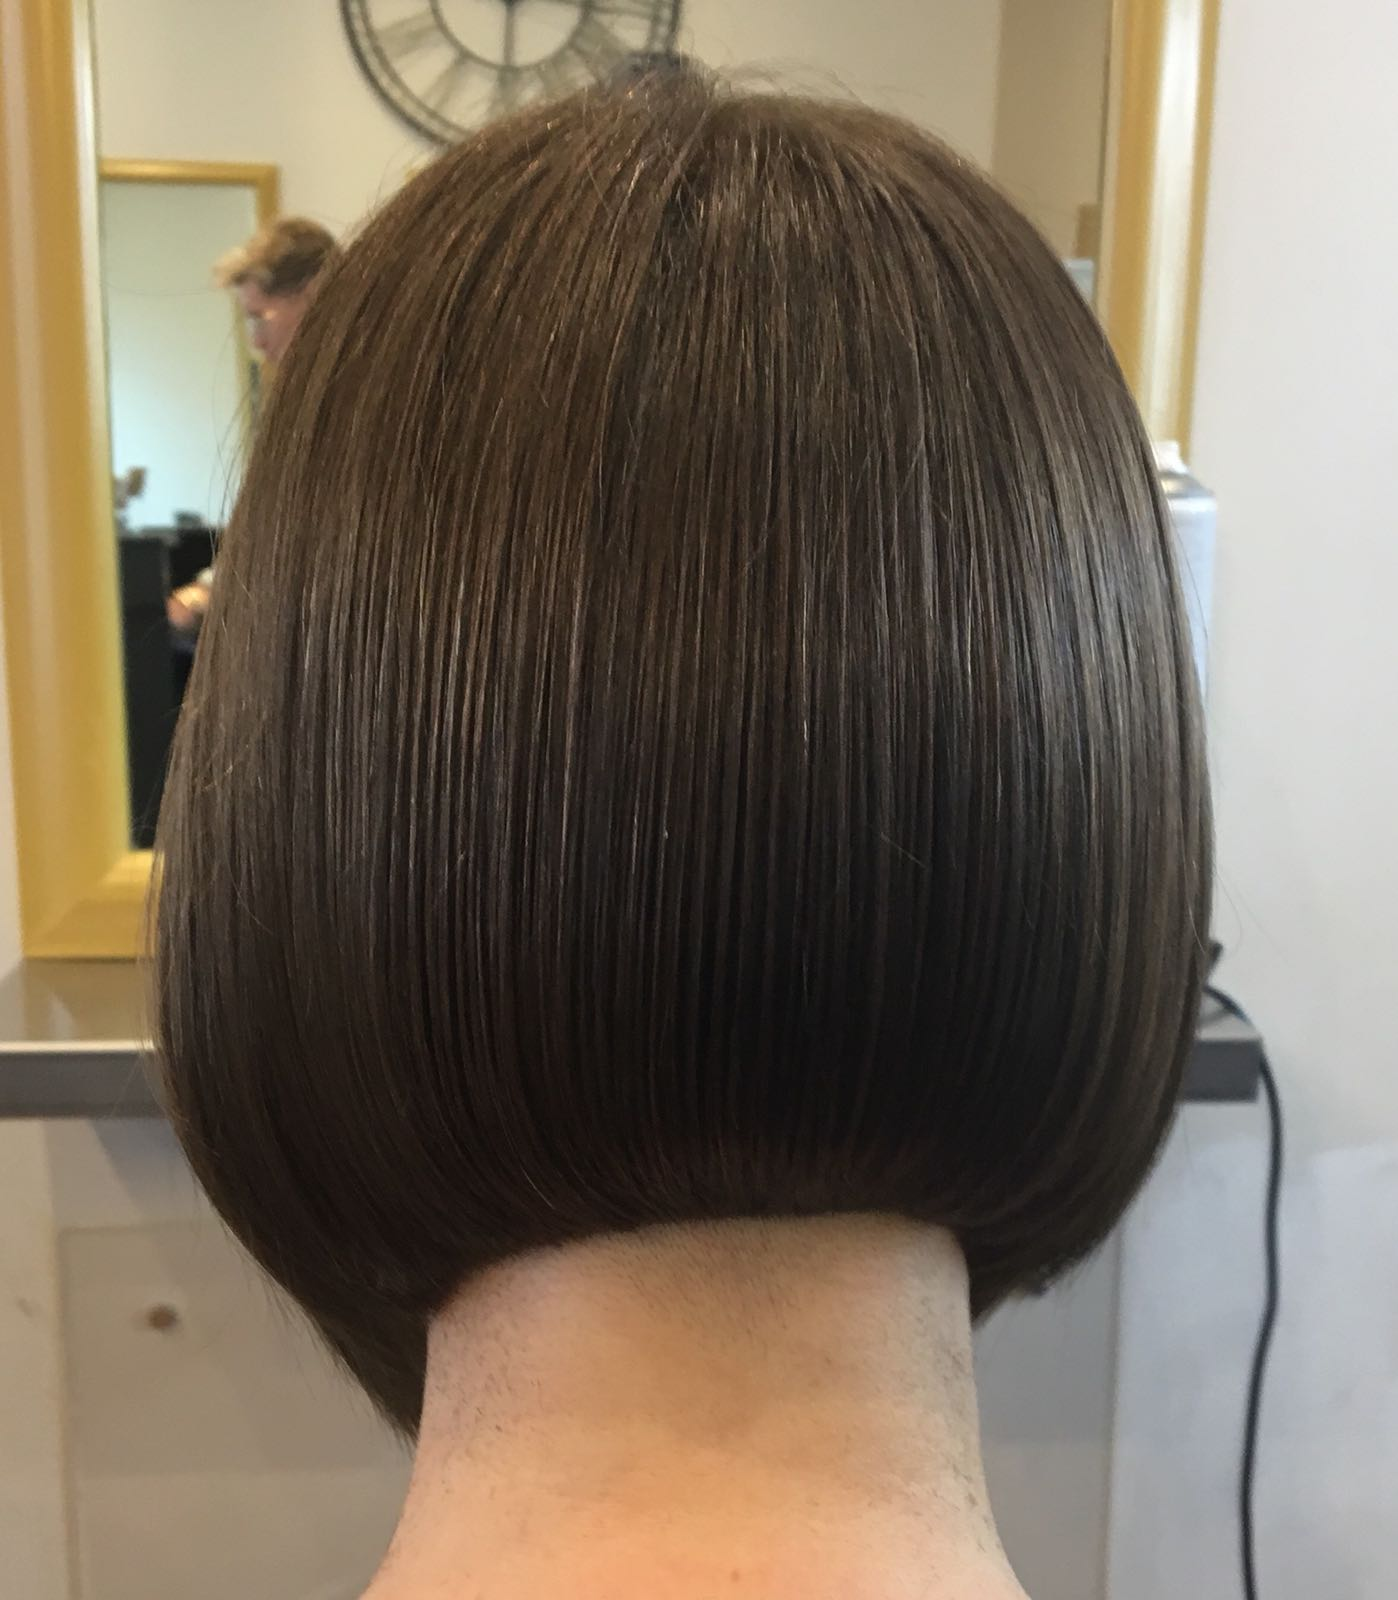 3 steps to a precision bob.  1. An amazing client. 2. Use an undercut technique 3. Take the time it needs to achieve it!.jpeg